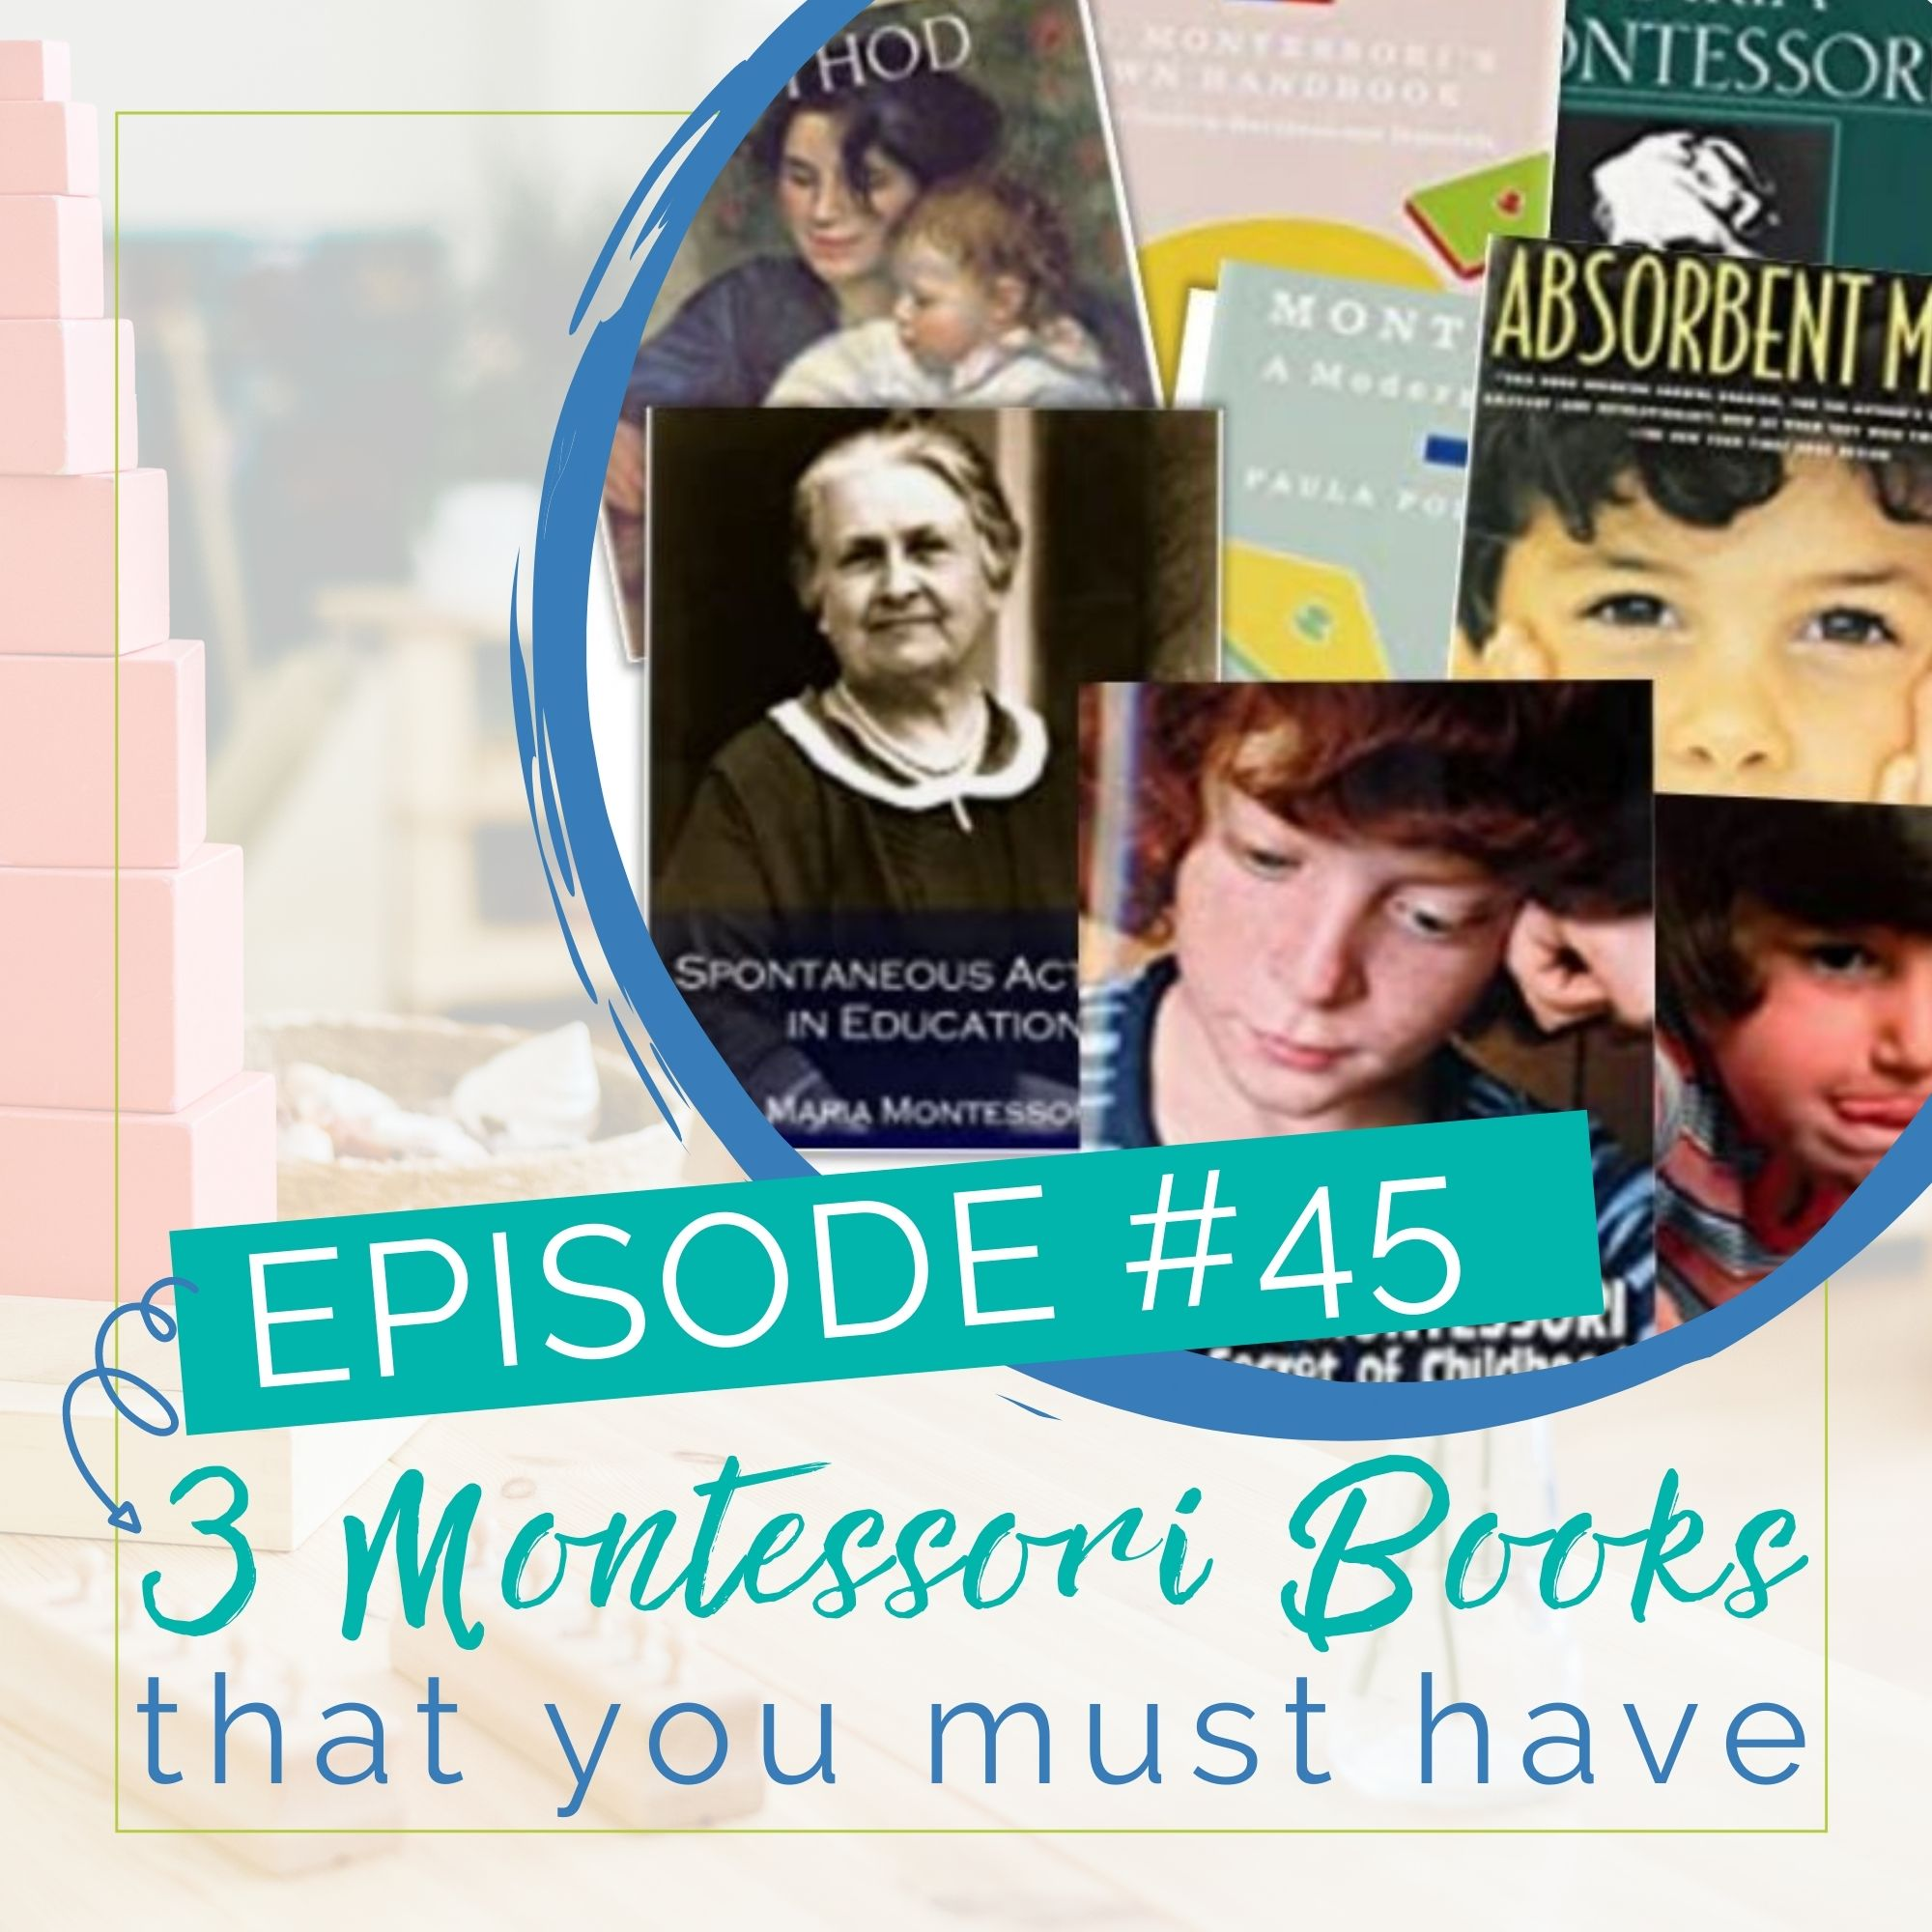 Episode 45: 3 Montessori books that you must have (Part 1) show art